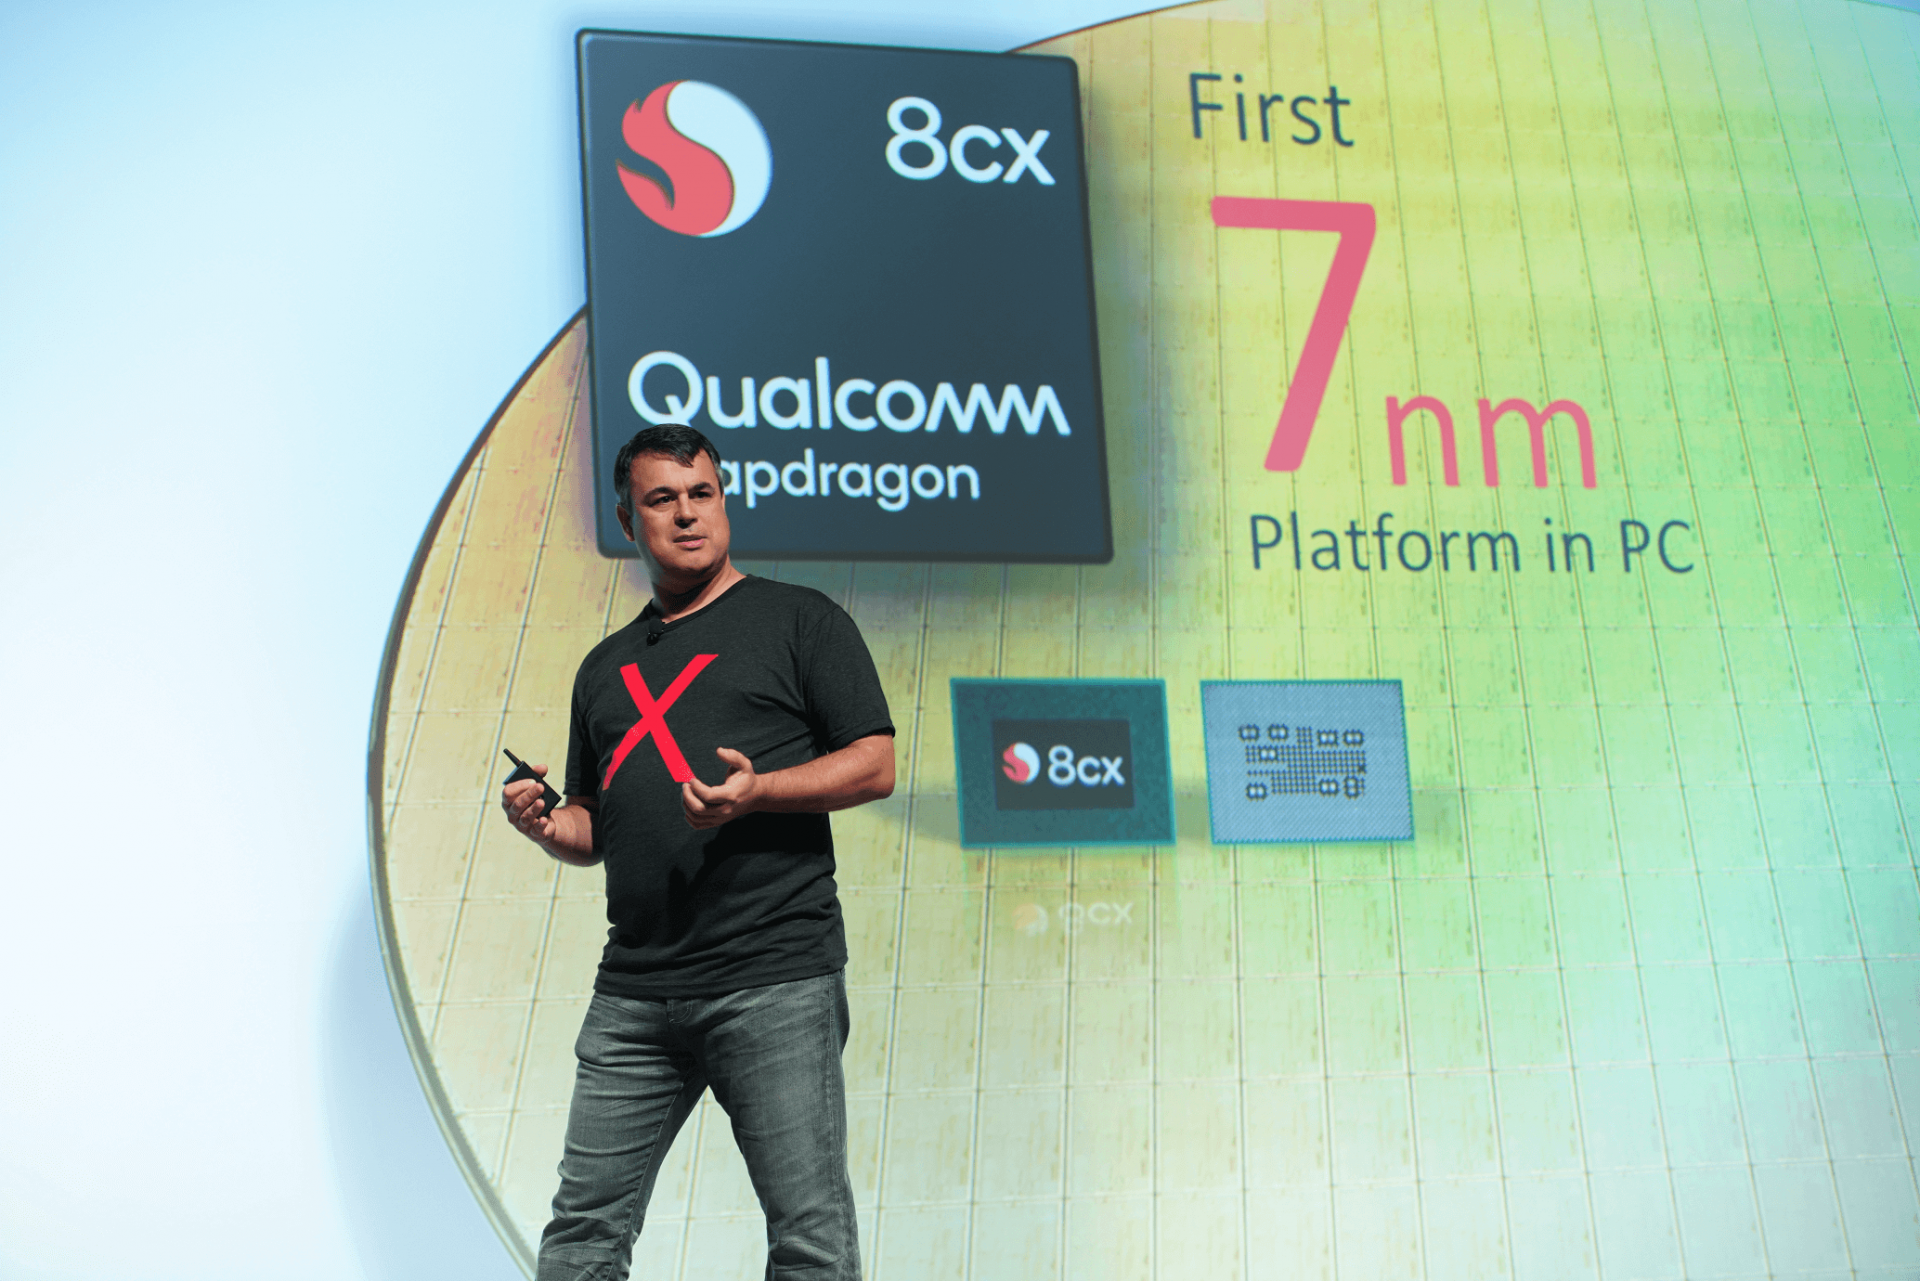 5 1 - Snapdragon 8cx é o novo processador da Qualcomm para PCs com Windows